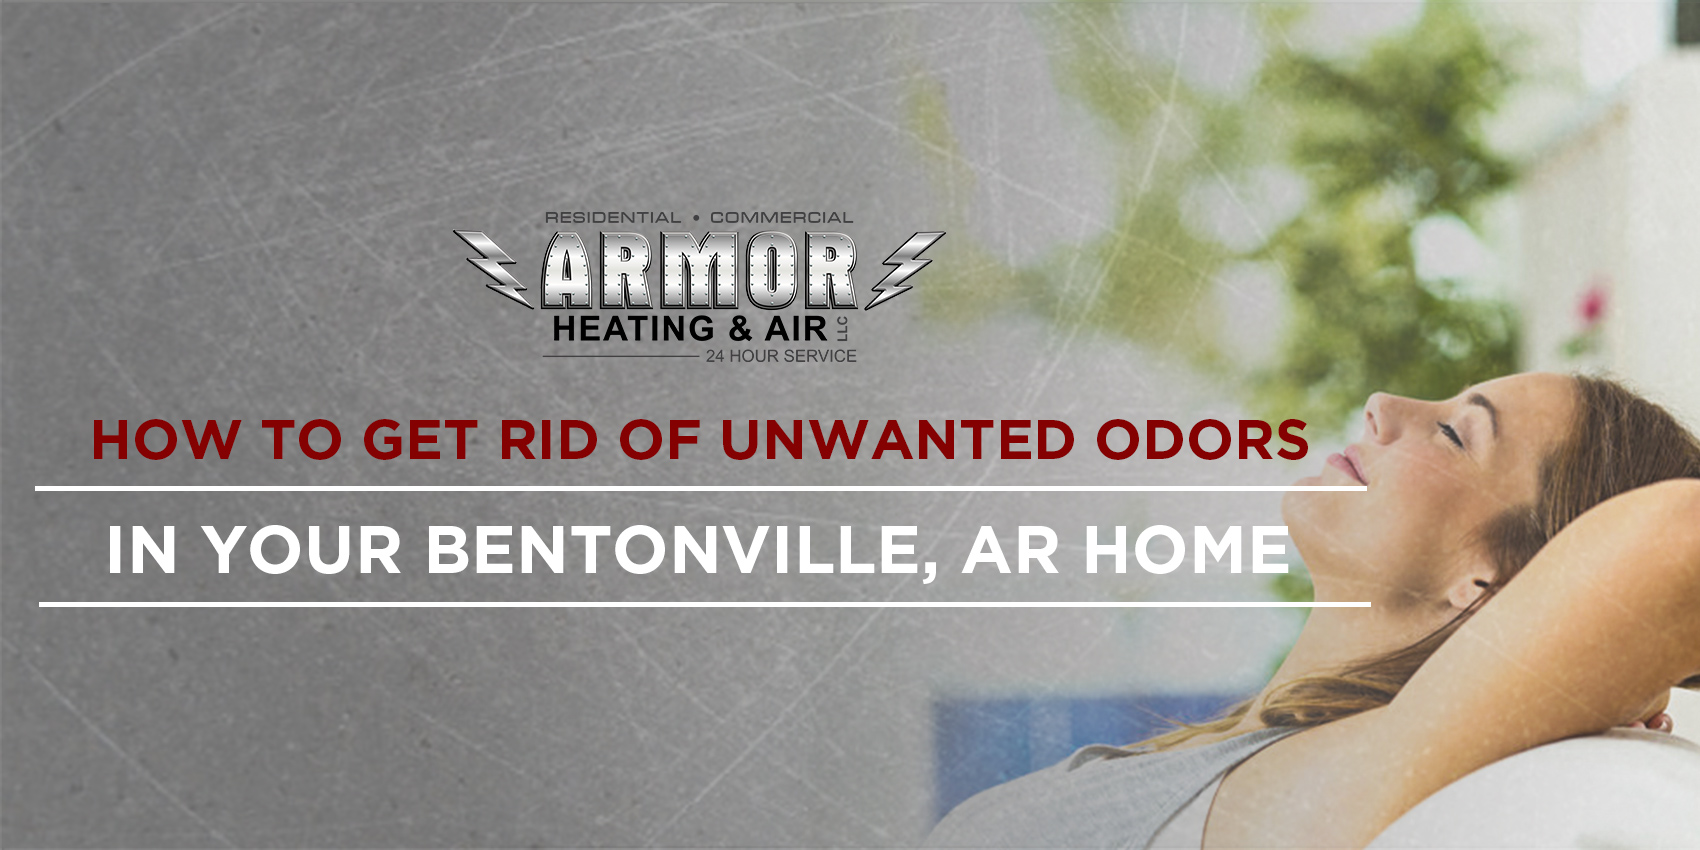 How to Get Rid of Unwanted Odors in Your Bentonville, AR Home